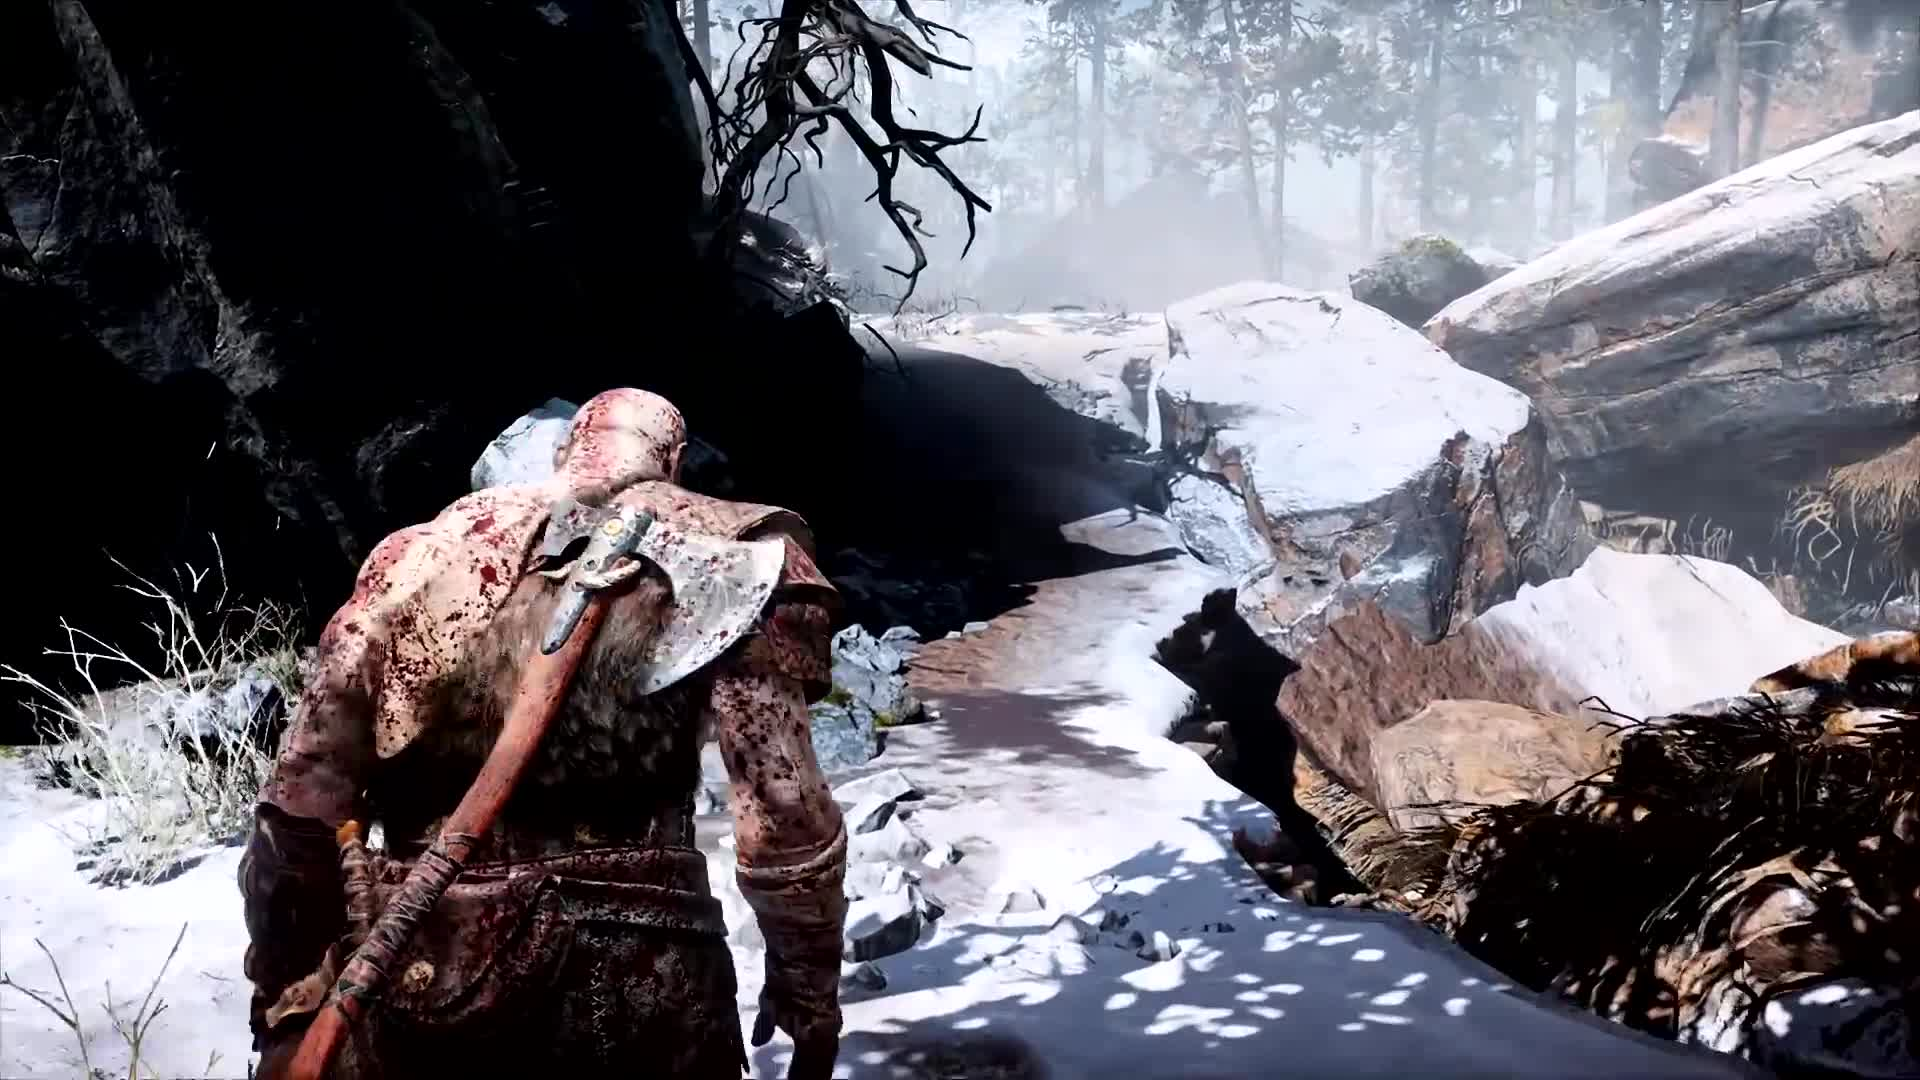 God Of War 3 Ps4 Gifs Search | Search & Share on Homdor